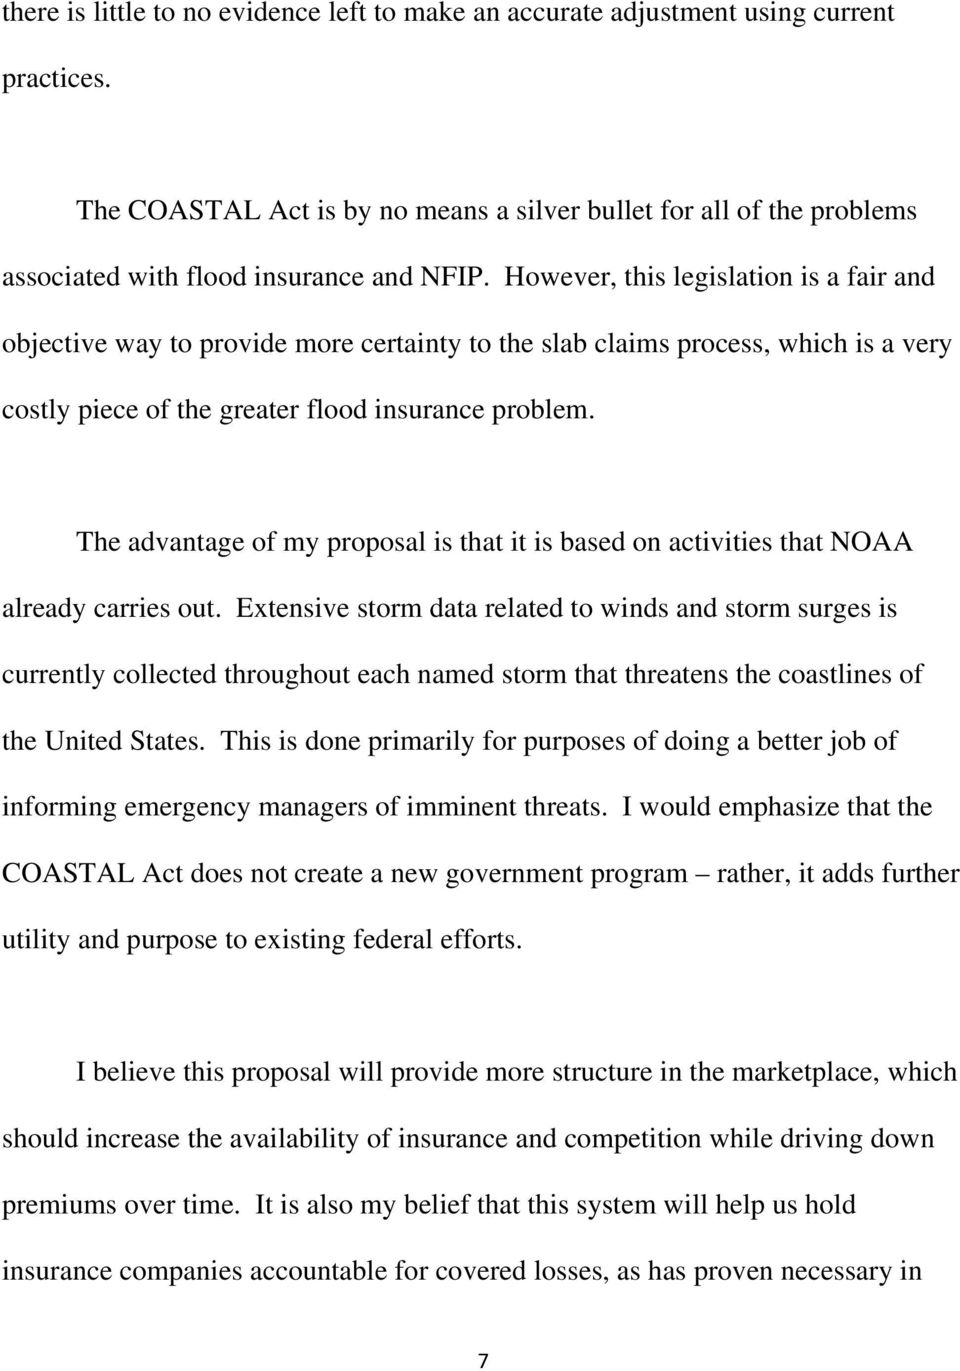 However, this legislation is a fair and objective way to provide more certainty to the slab claims process, which is a very costly piece of the greater flood insurance problem.